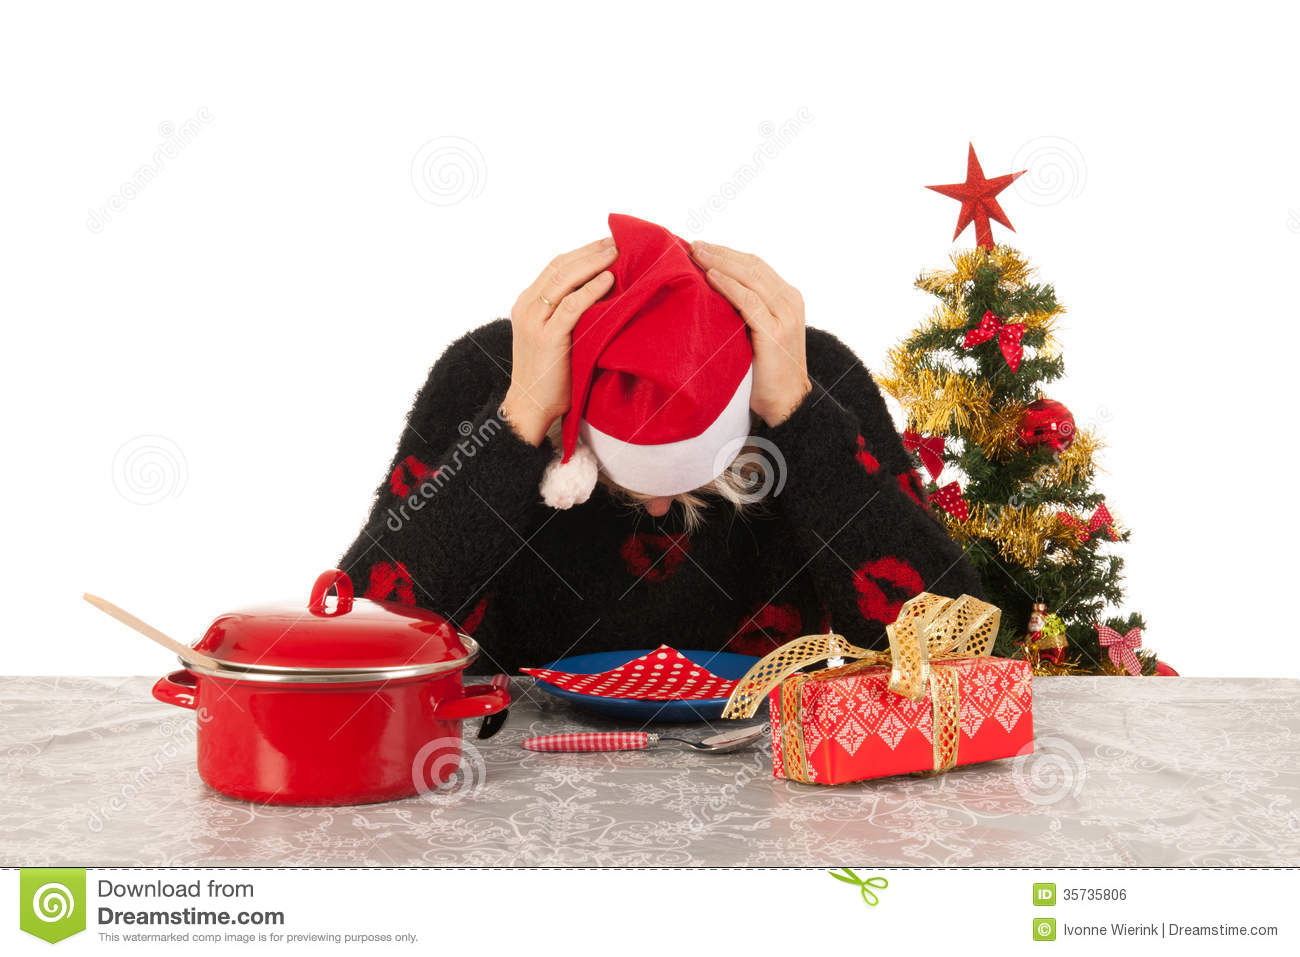 Alone For Christmas.Woman Of Mature Age Alone With Christmas Stock Photo Image